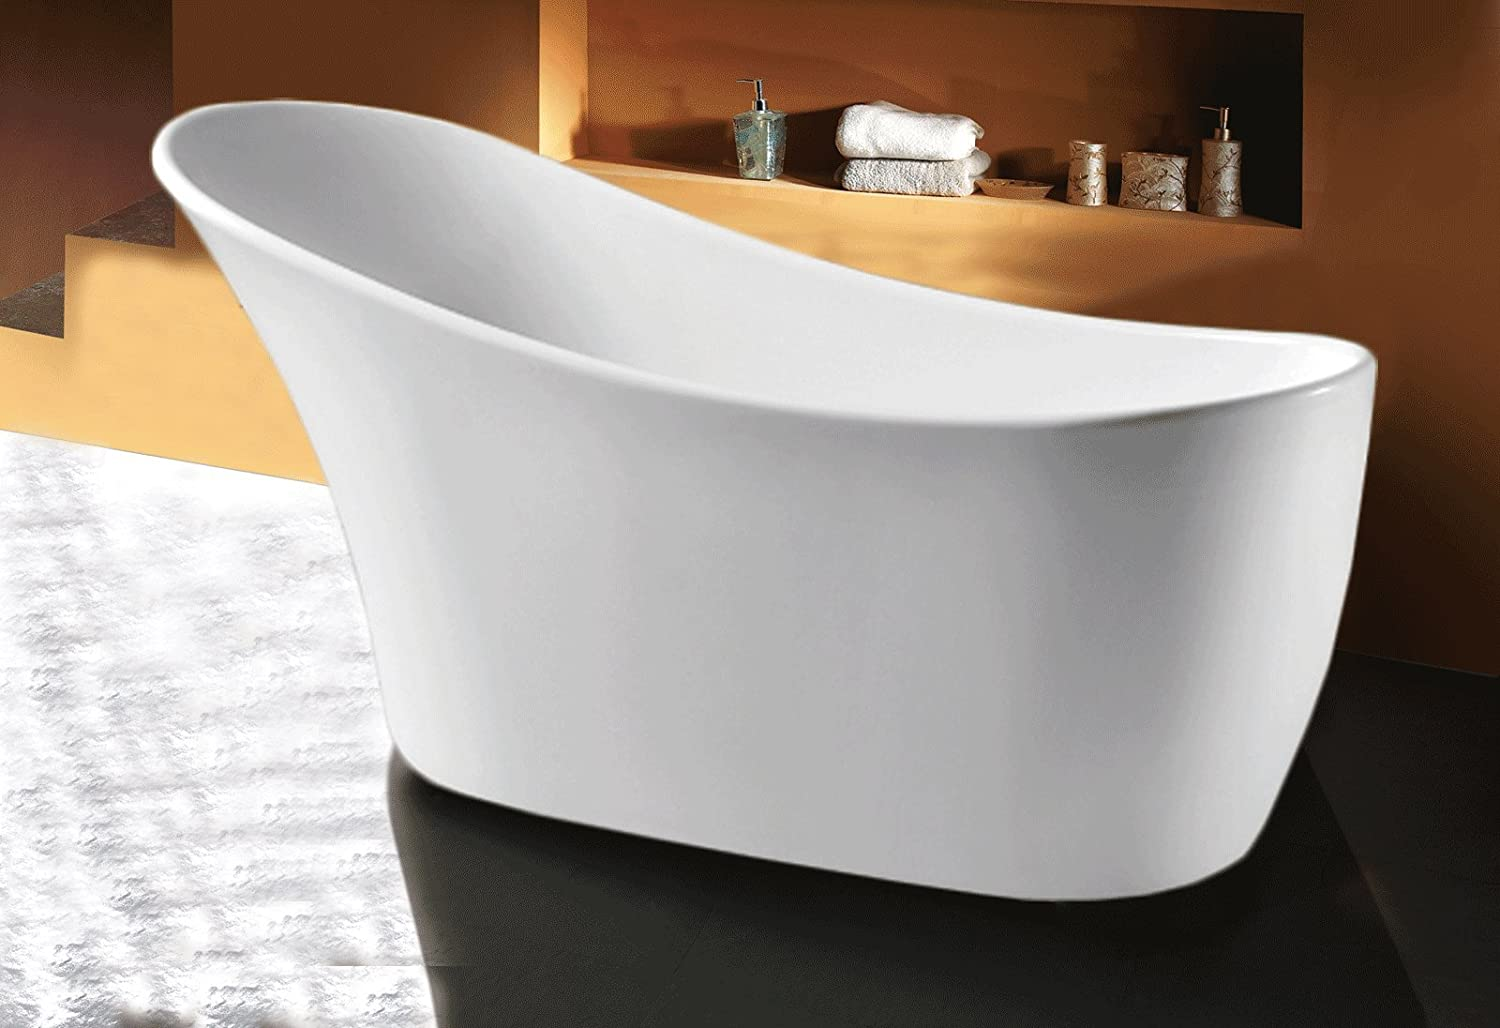 Top 10 Best Free Standing Acrylic Bathtubs 2016 2017 On Flipboard